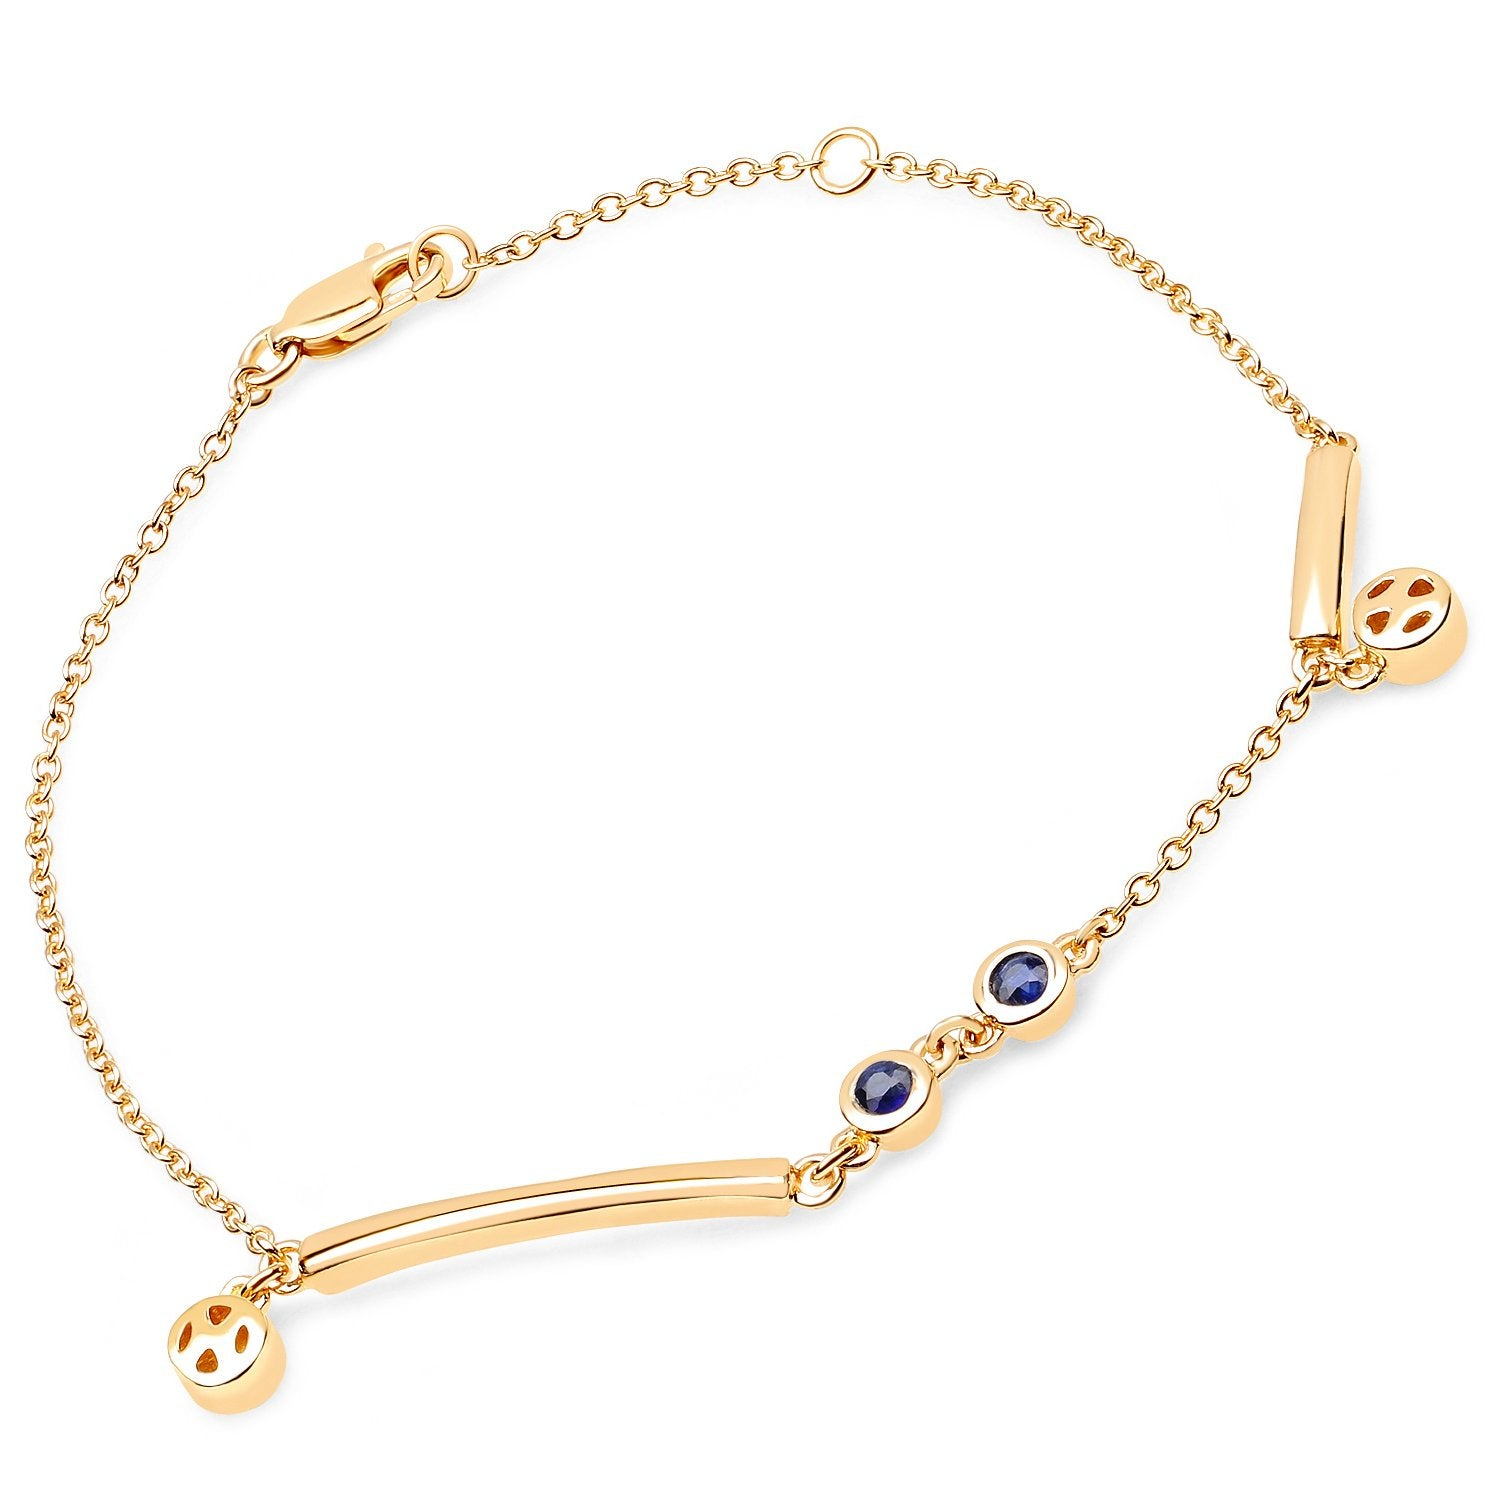 LoveHuang 0.26 Carats Genuine Kyanite Minimalist Bracelet Solid .925 Sterling Silver With 18KT Yellow Gold Plating